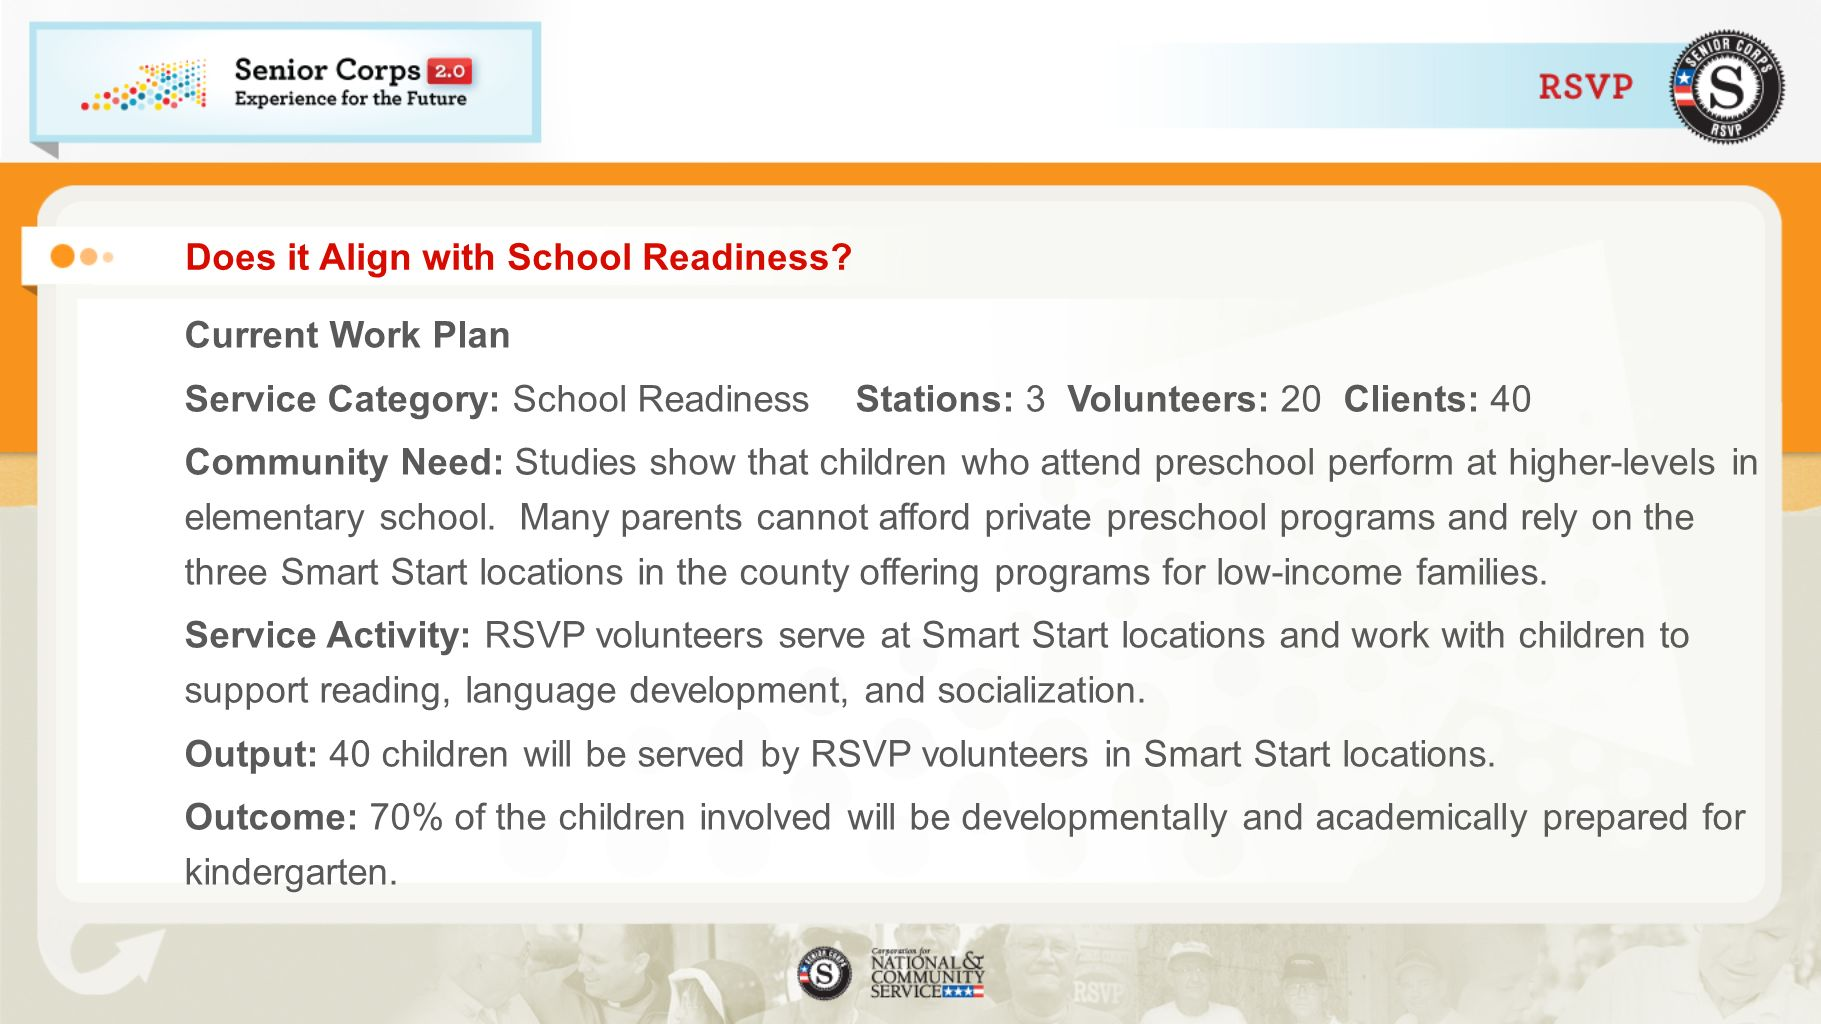 Does it Align with School Readiness